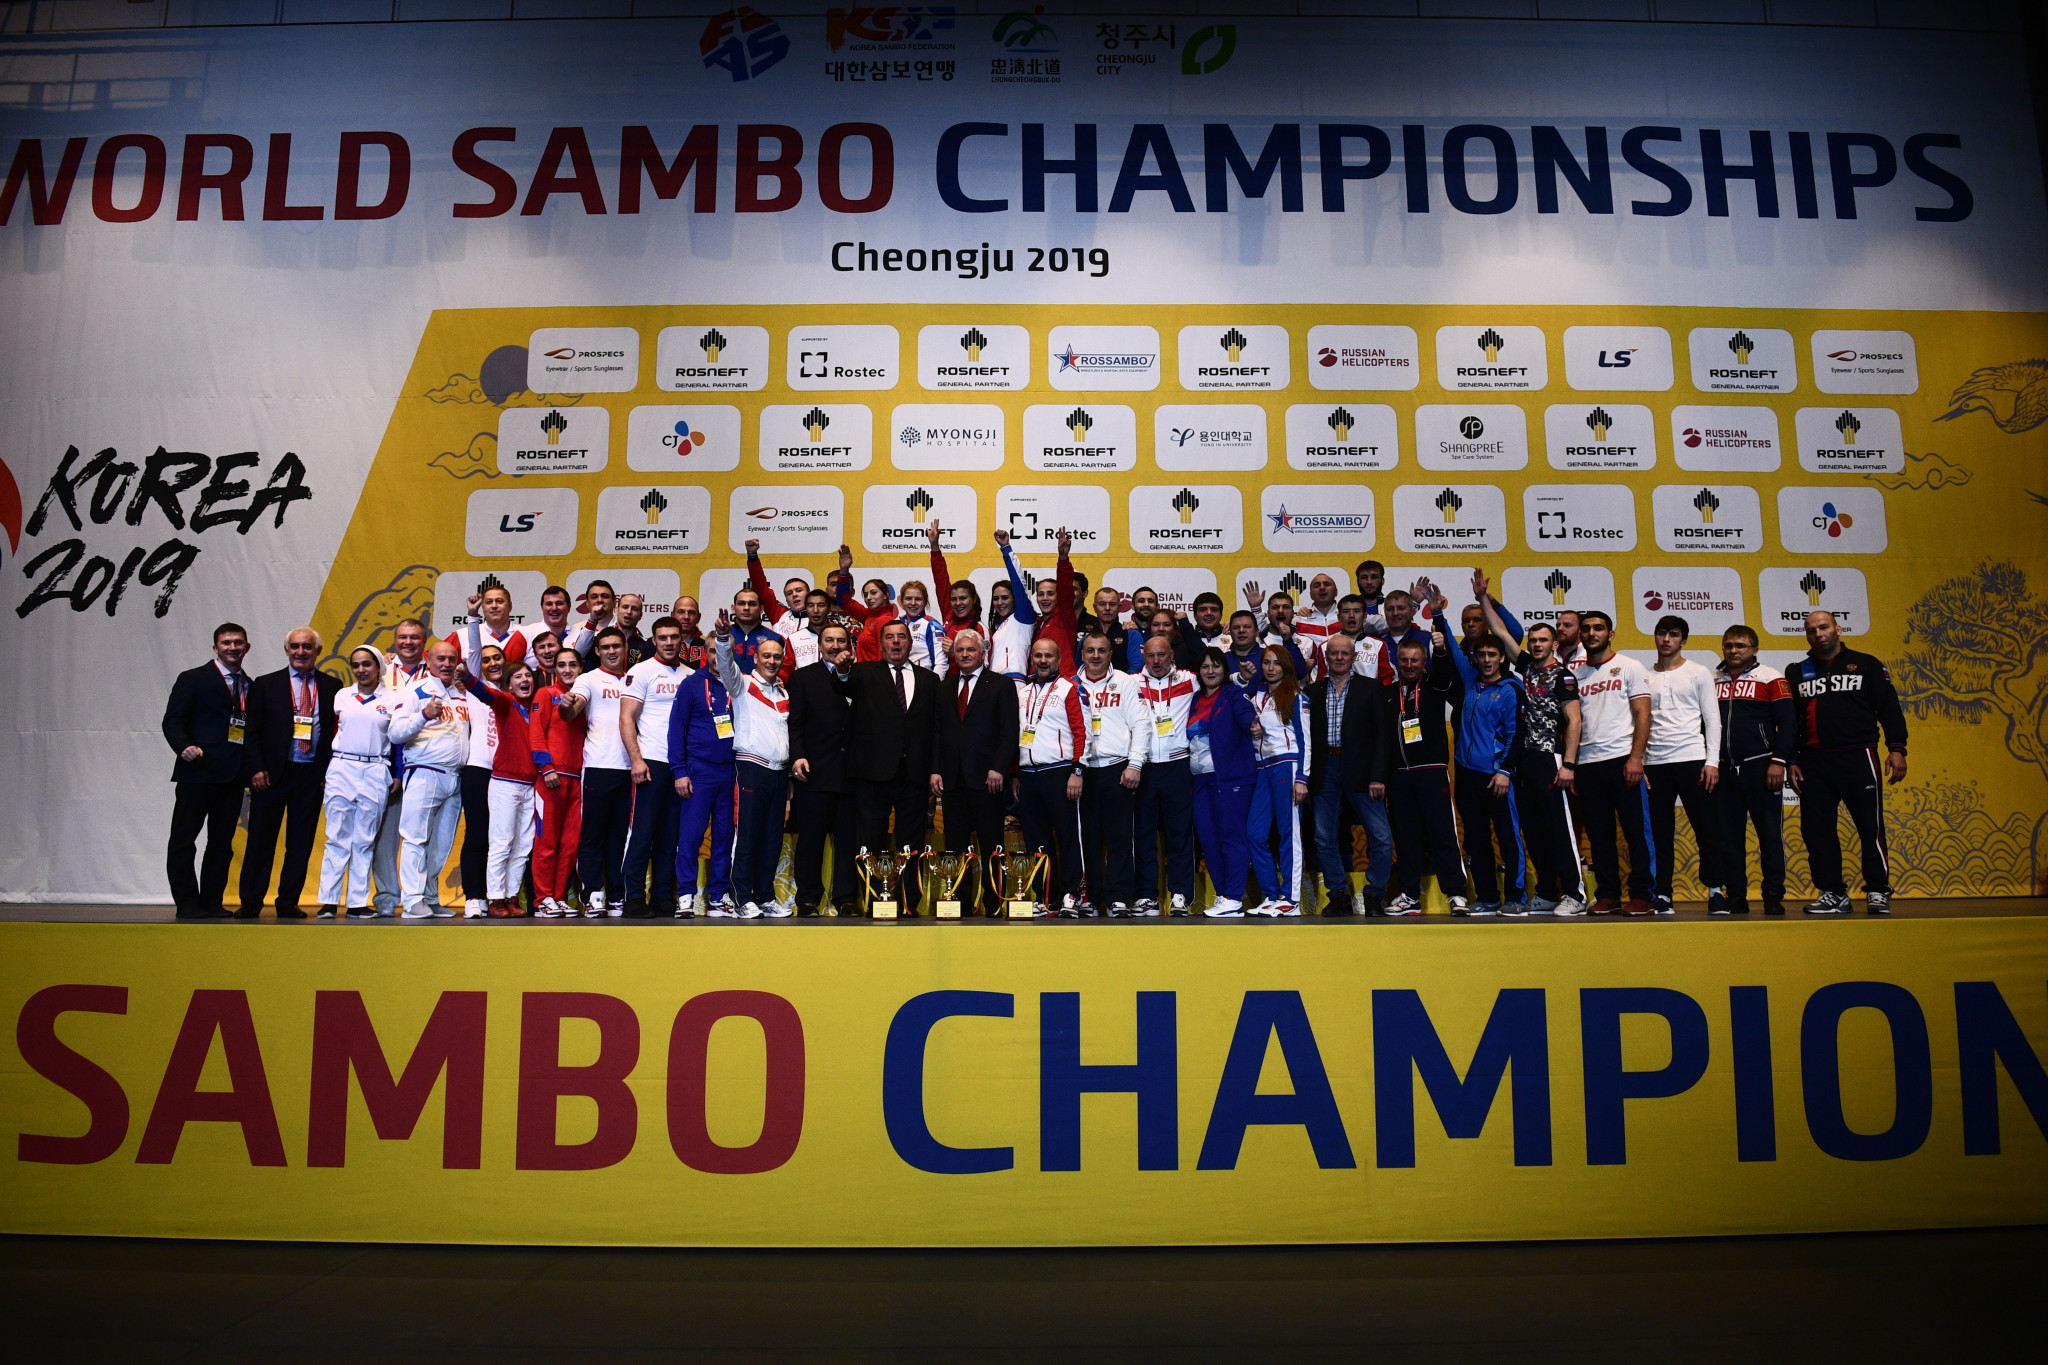 Russia surge to 20 golds to sweep team honours at World Sambo Championships